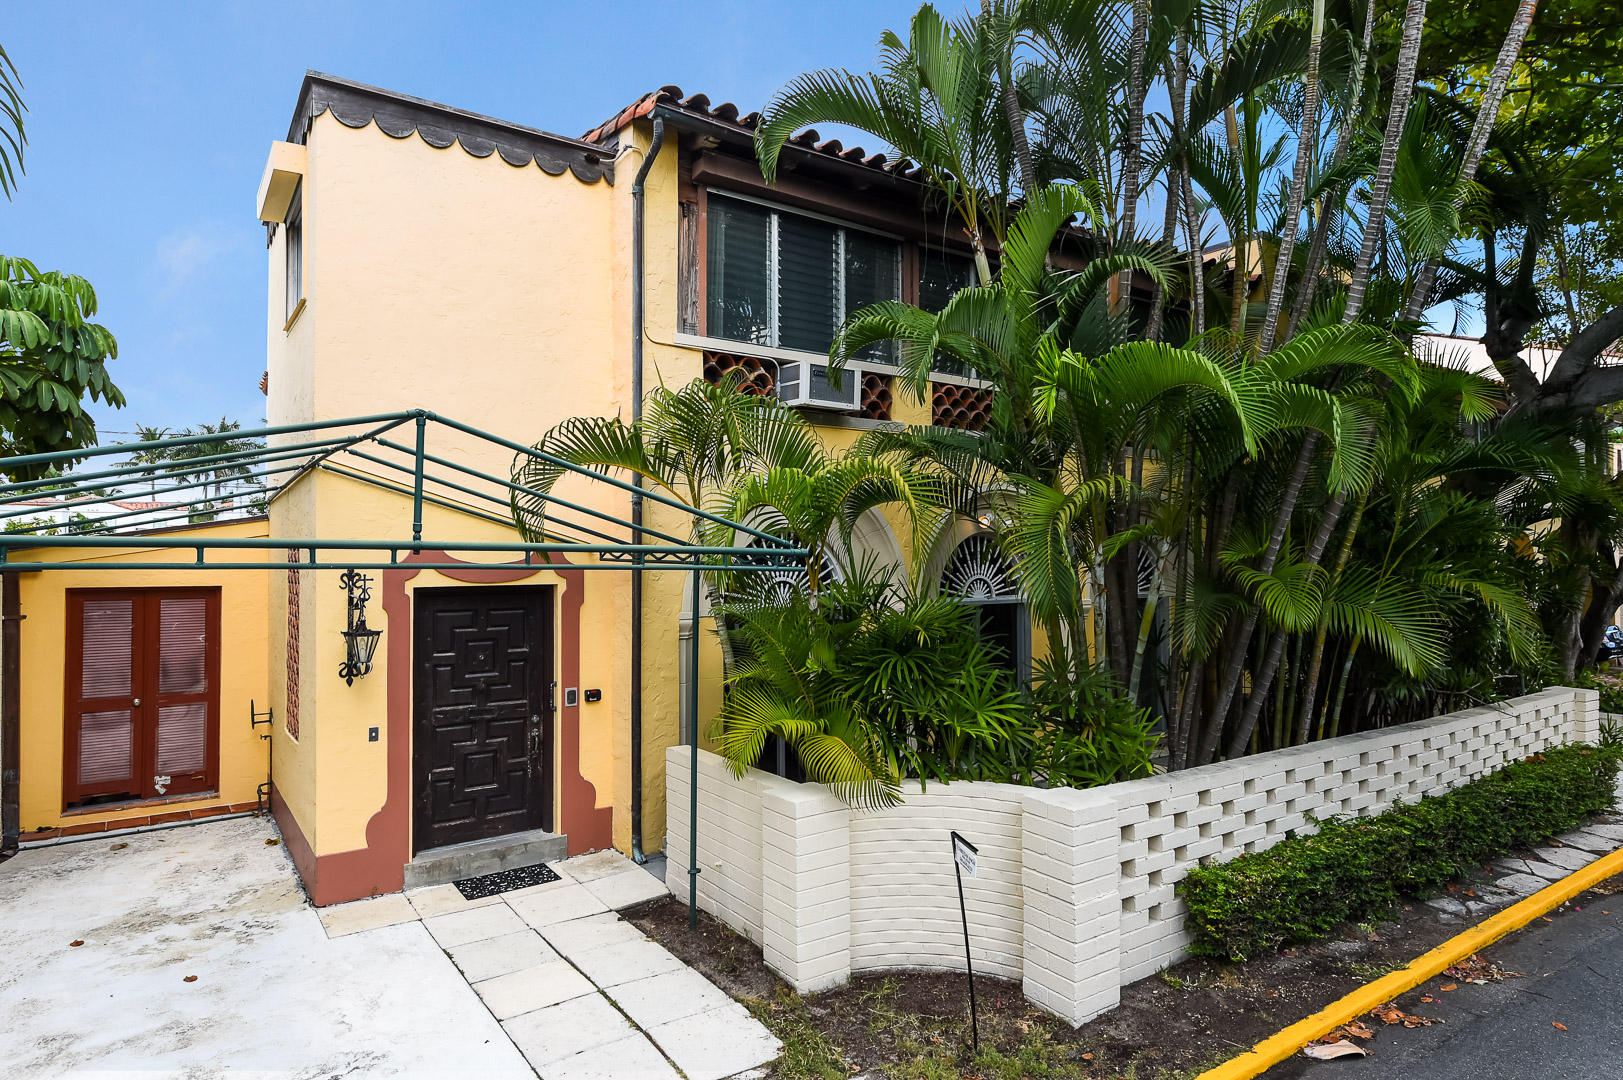 206 Phipps, Palm Beach, Florida 33480, 6 Bedrooms Bedrooms, ,7.3 BathroomsBathrooms,Single Family,For Sale,Phipps,RX-10479495